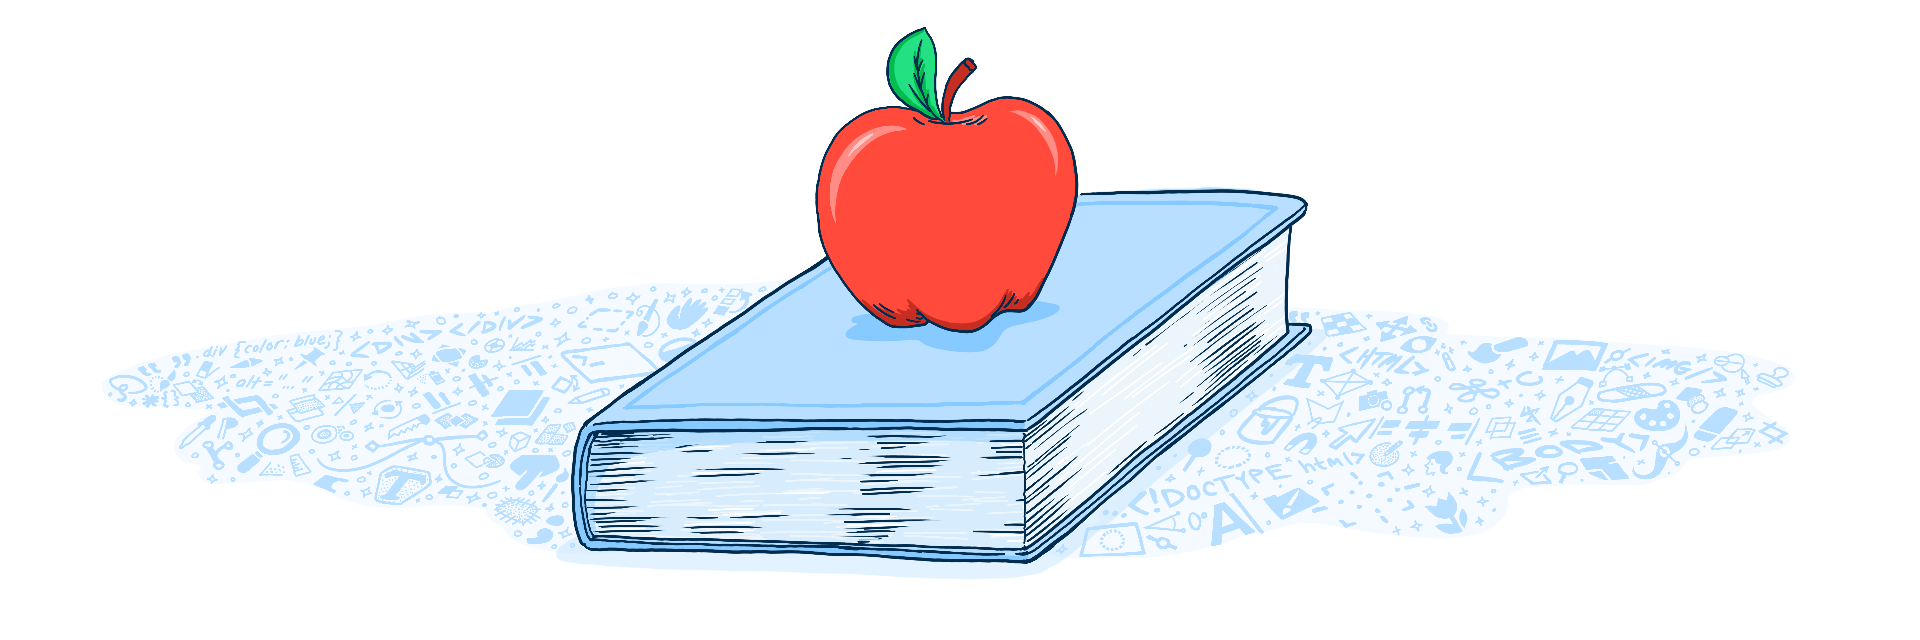 Illustration of a book and an apple.